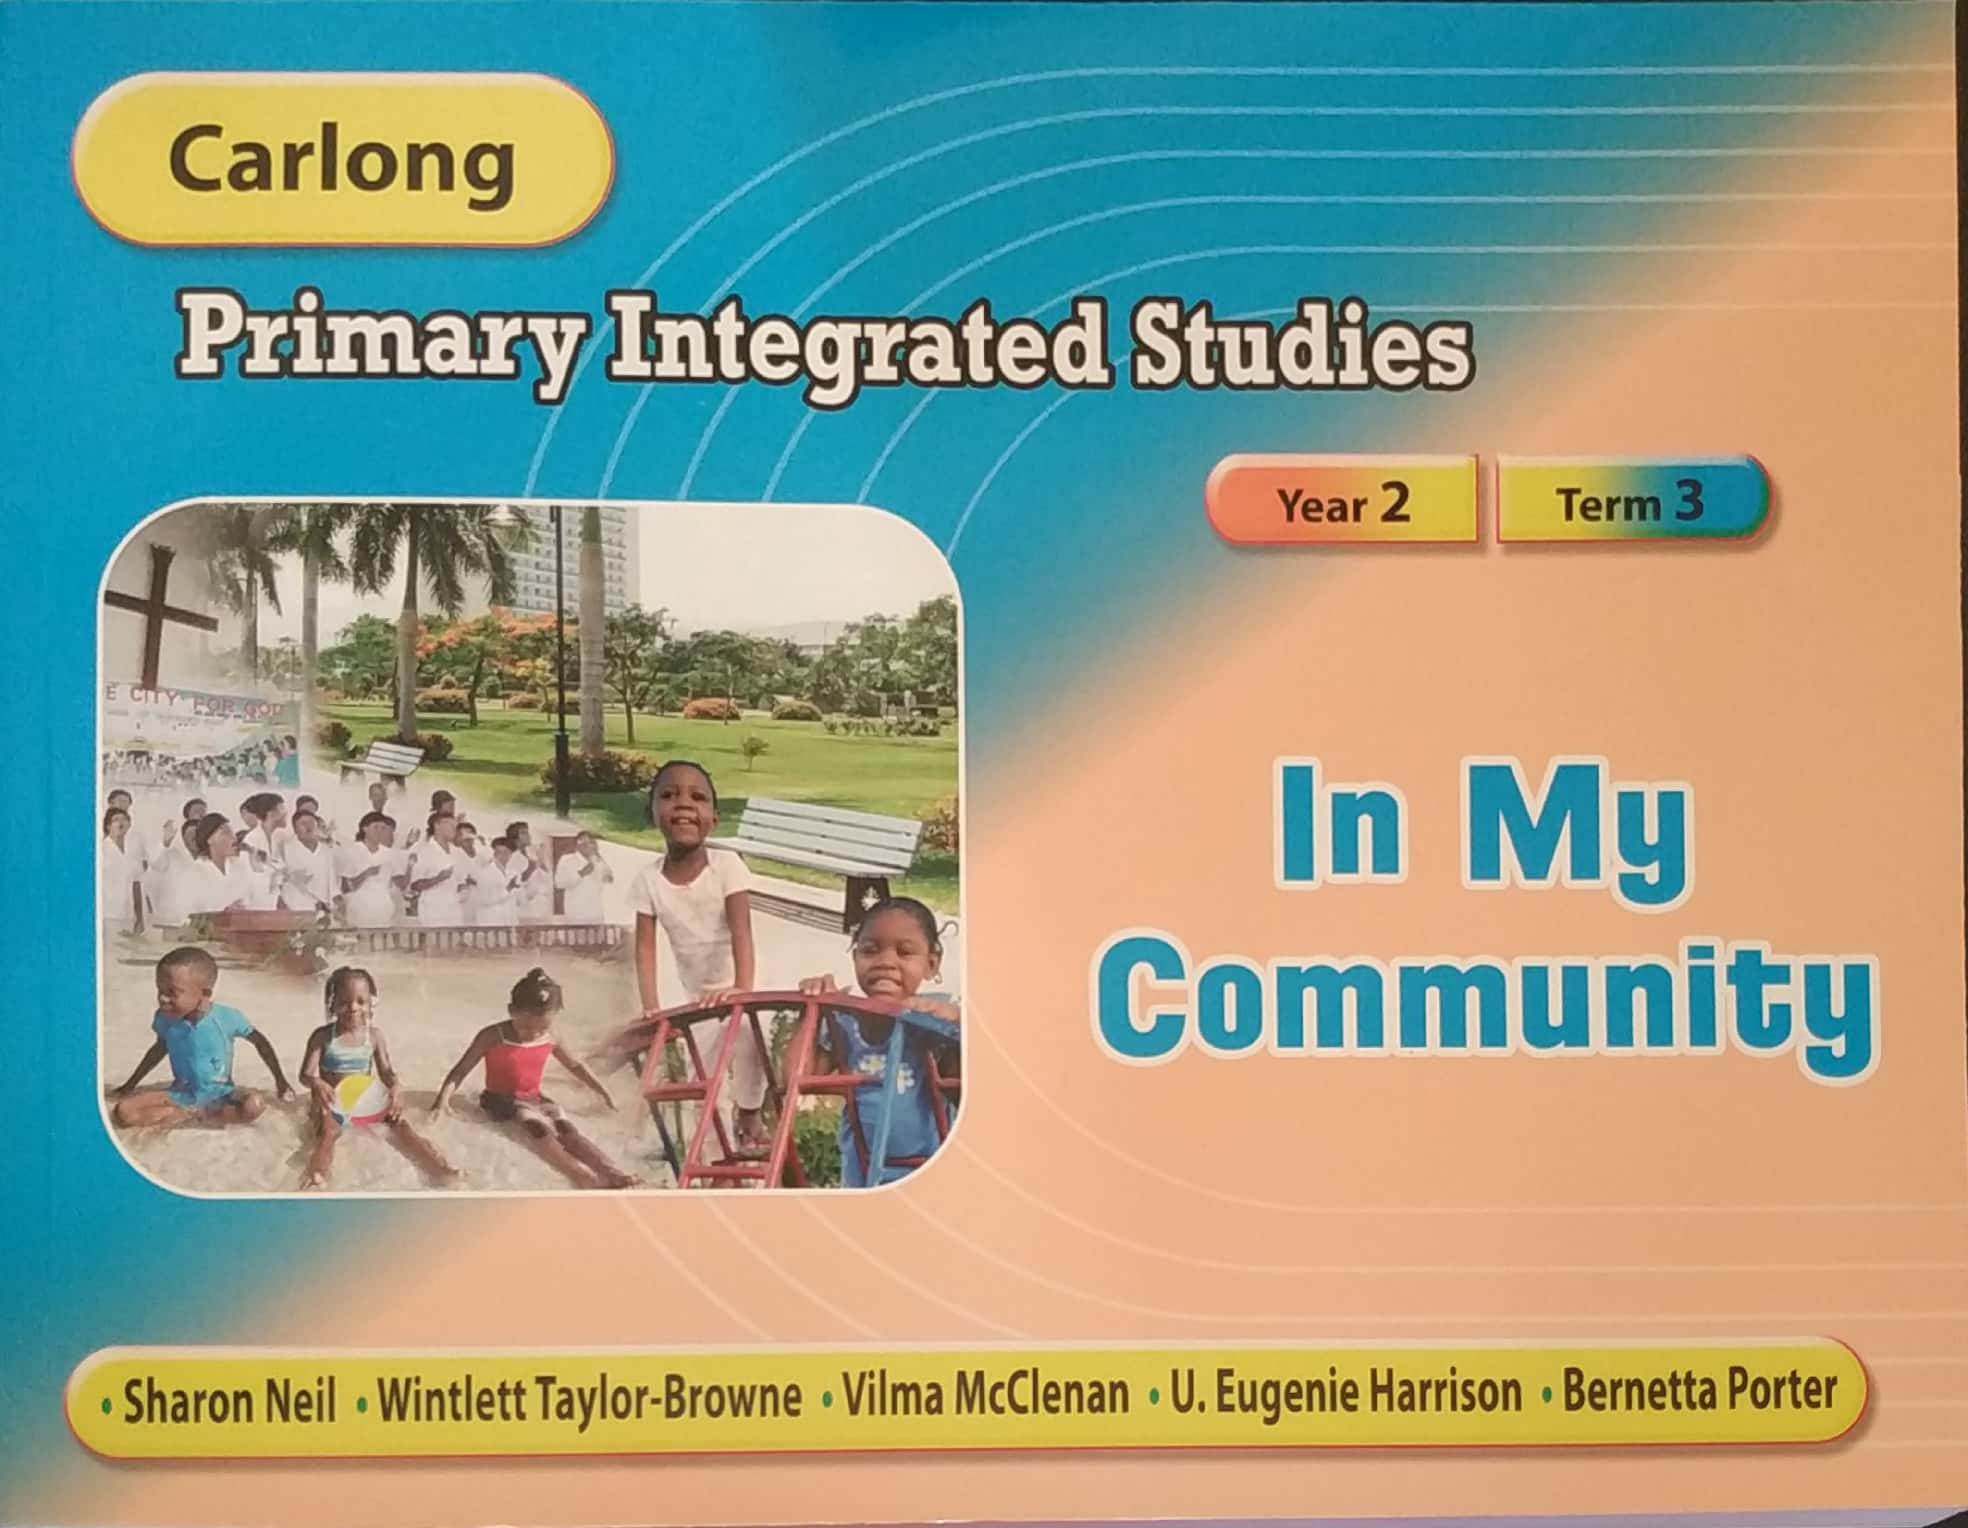 Carlong Primary Integrated Studies In My Community (Yr.2/Term 3)